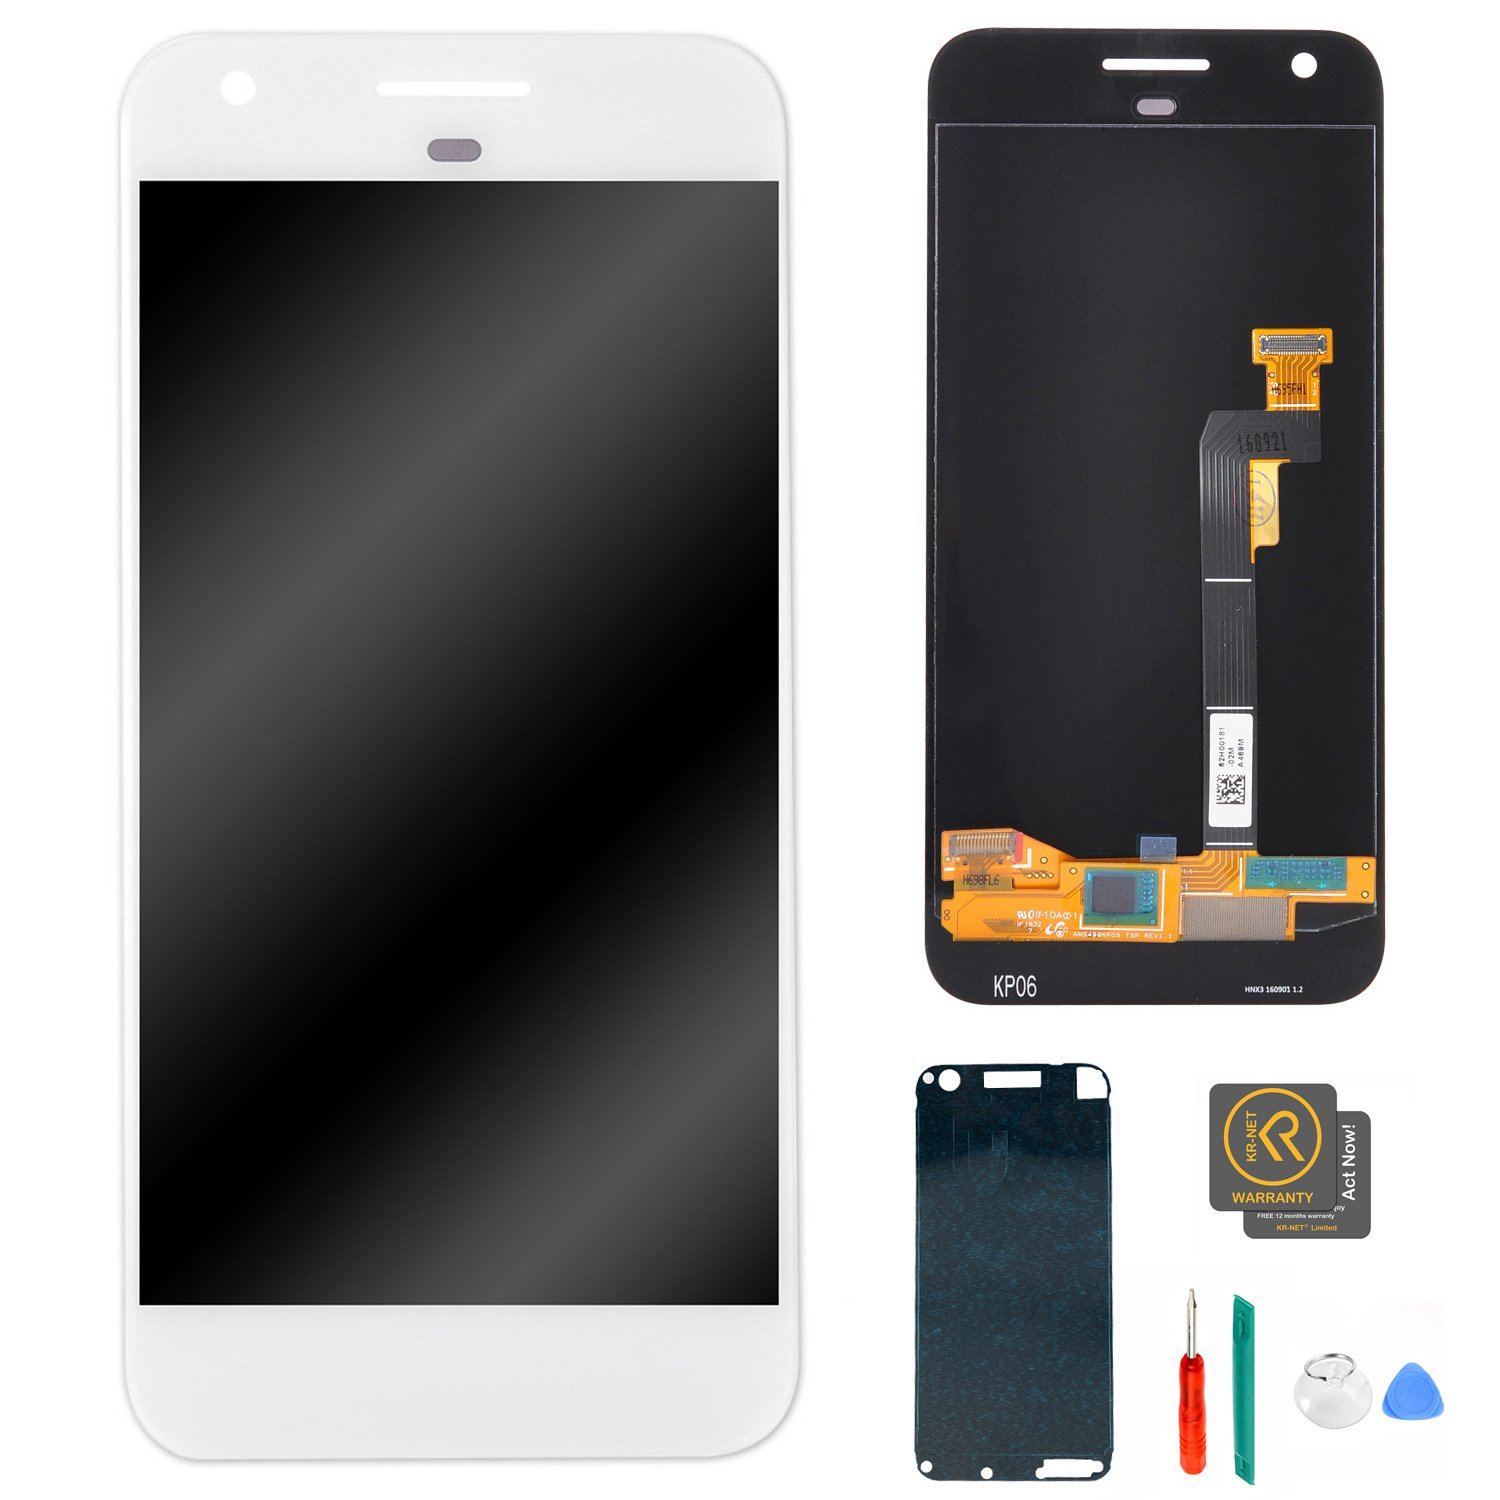 KR-NET 5'' LCD Display Touch Screen Digitizer Assembly for Google Pixel (Very Silver), with Precut LCD adhesive +Tools